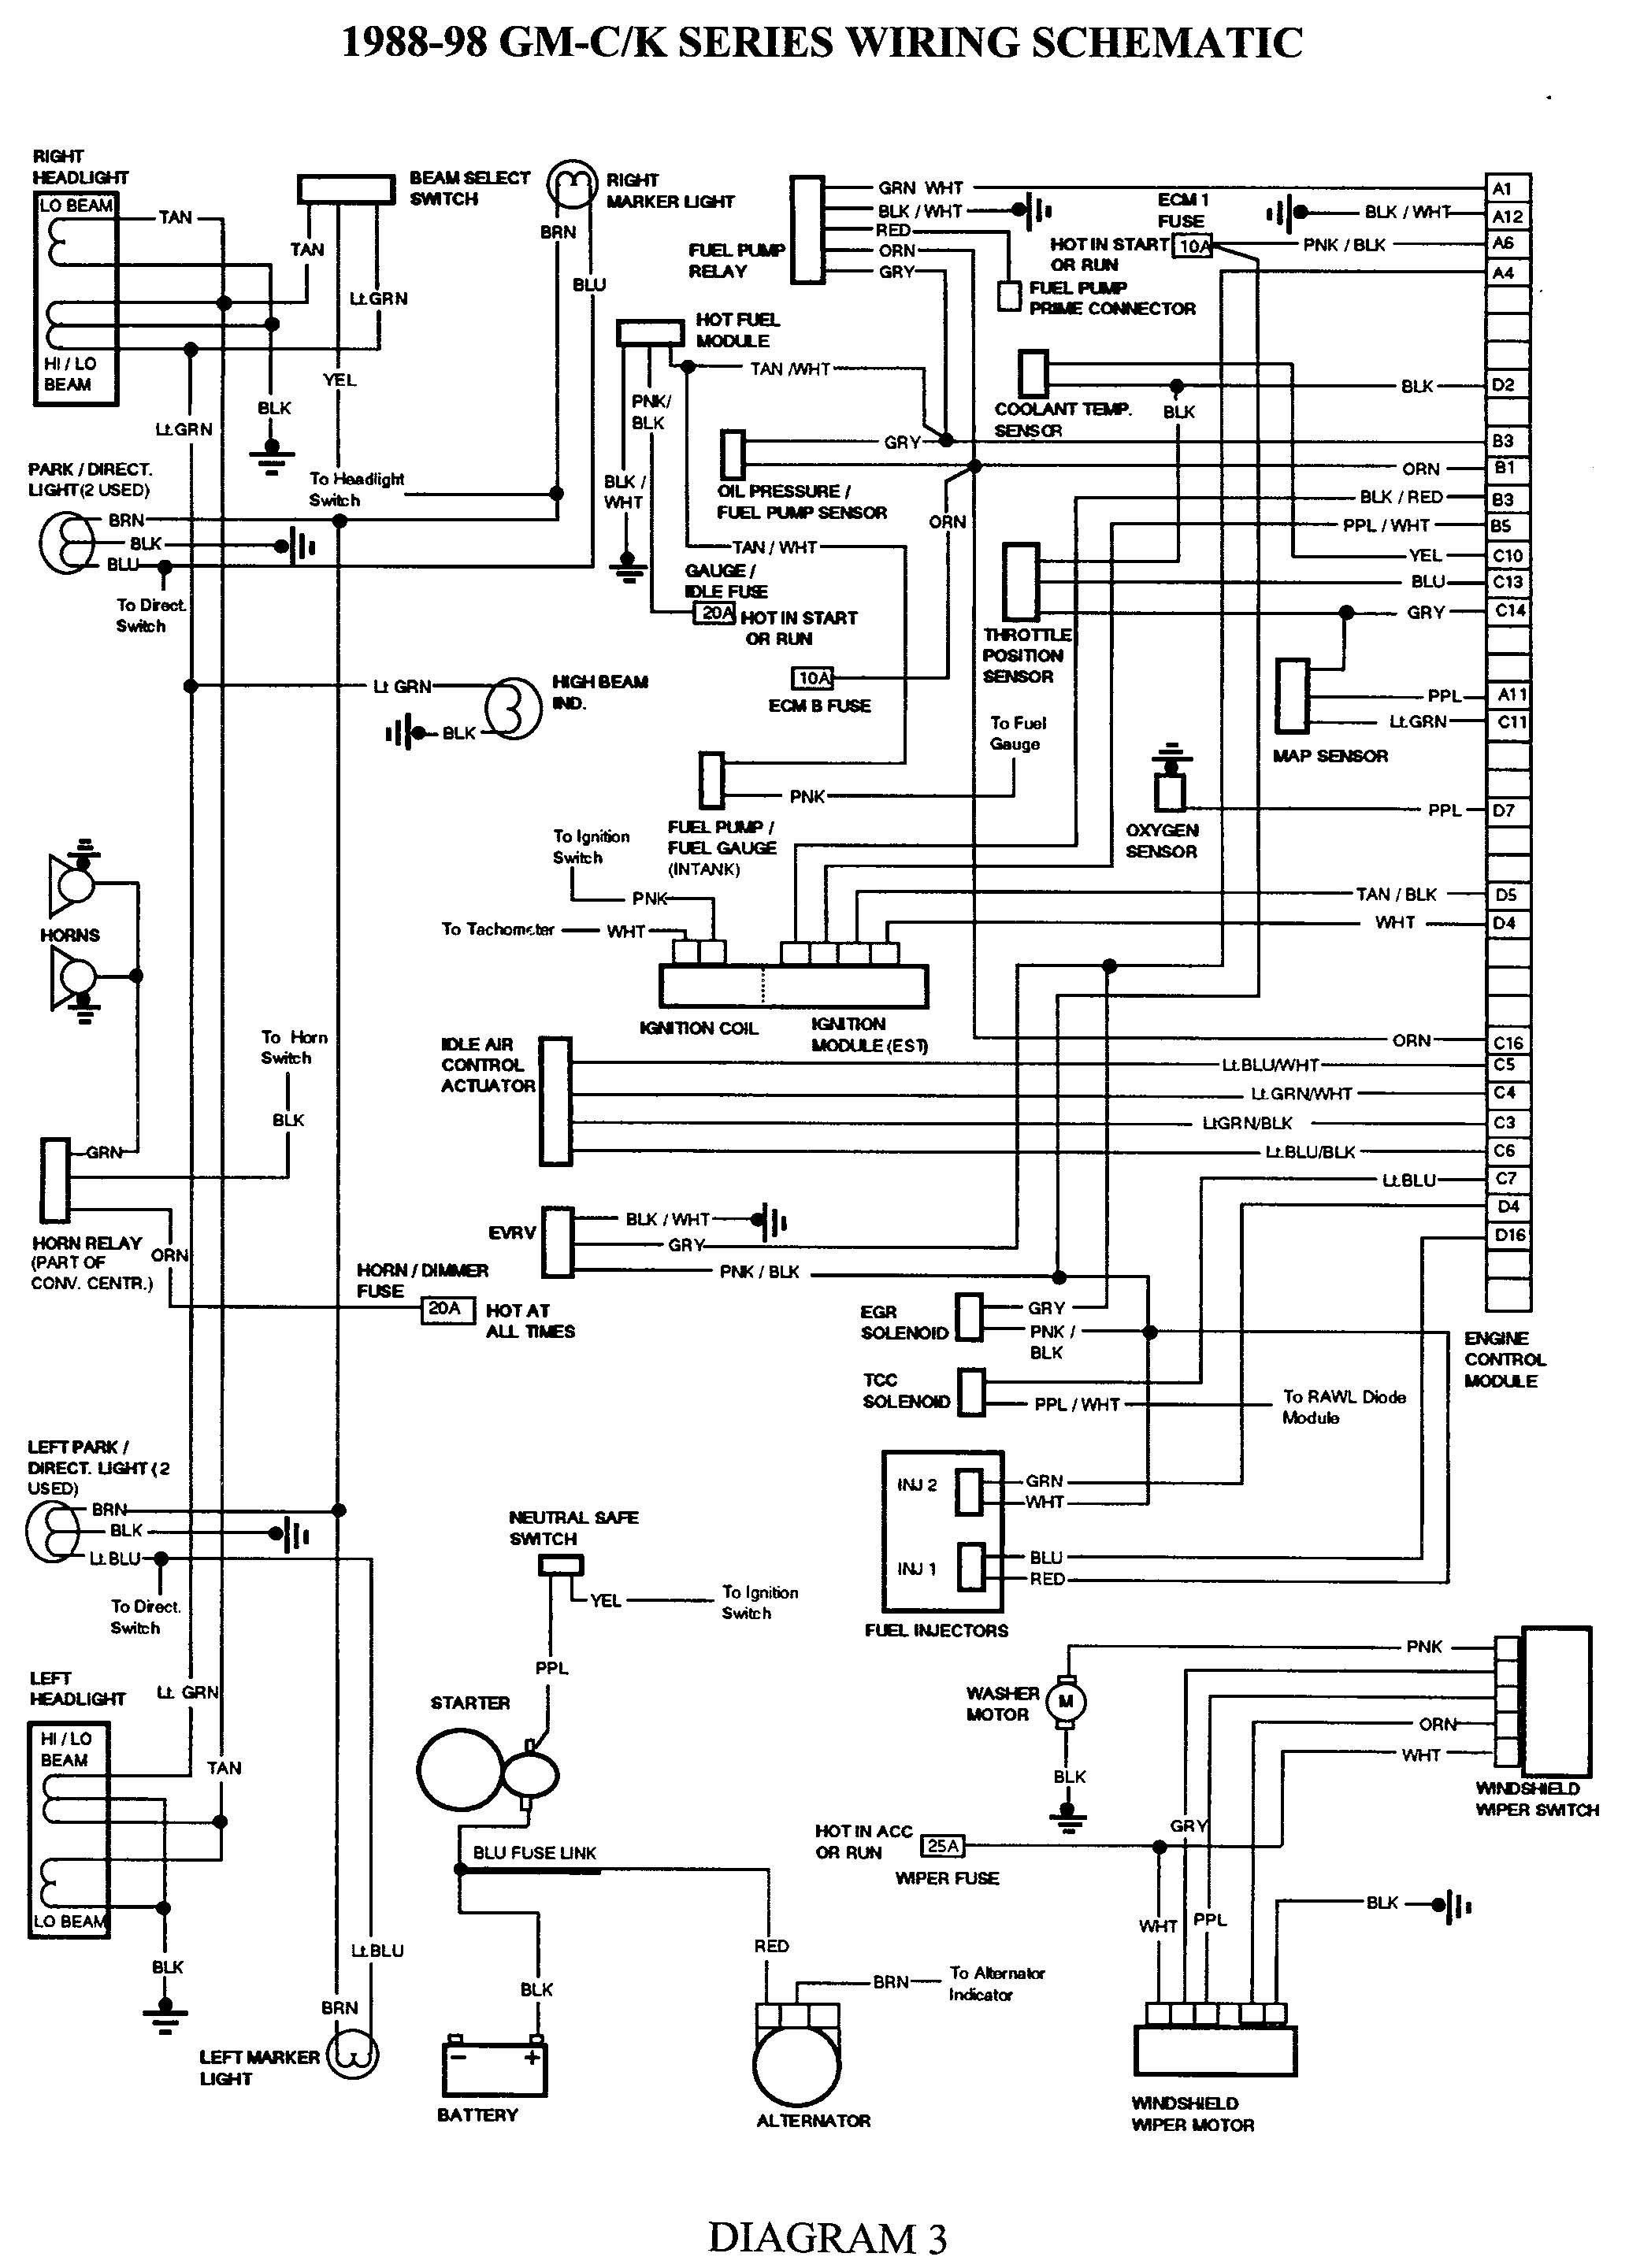 1971 gmc wiring harness wiring diagram schema1971 gmc wiring harness wiring  diagram experts 1971 gmc wiring